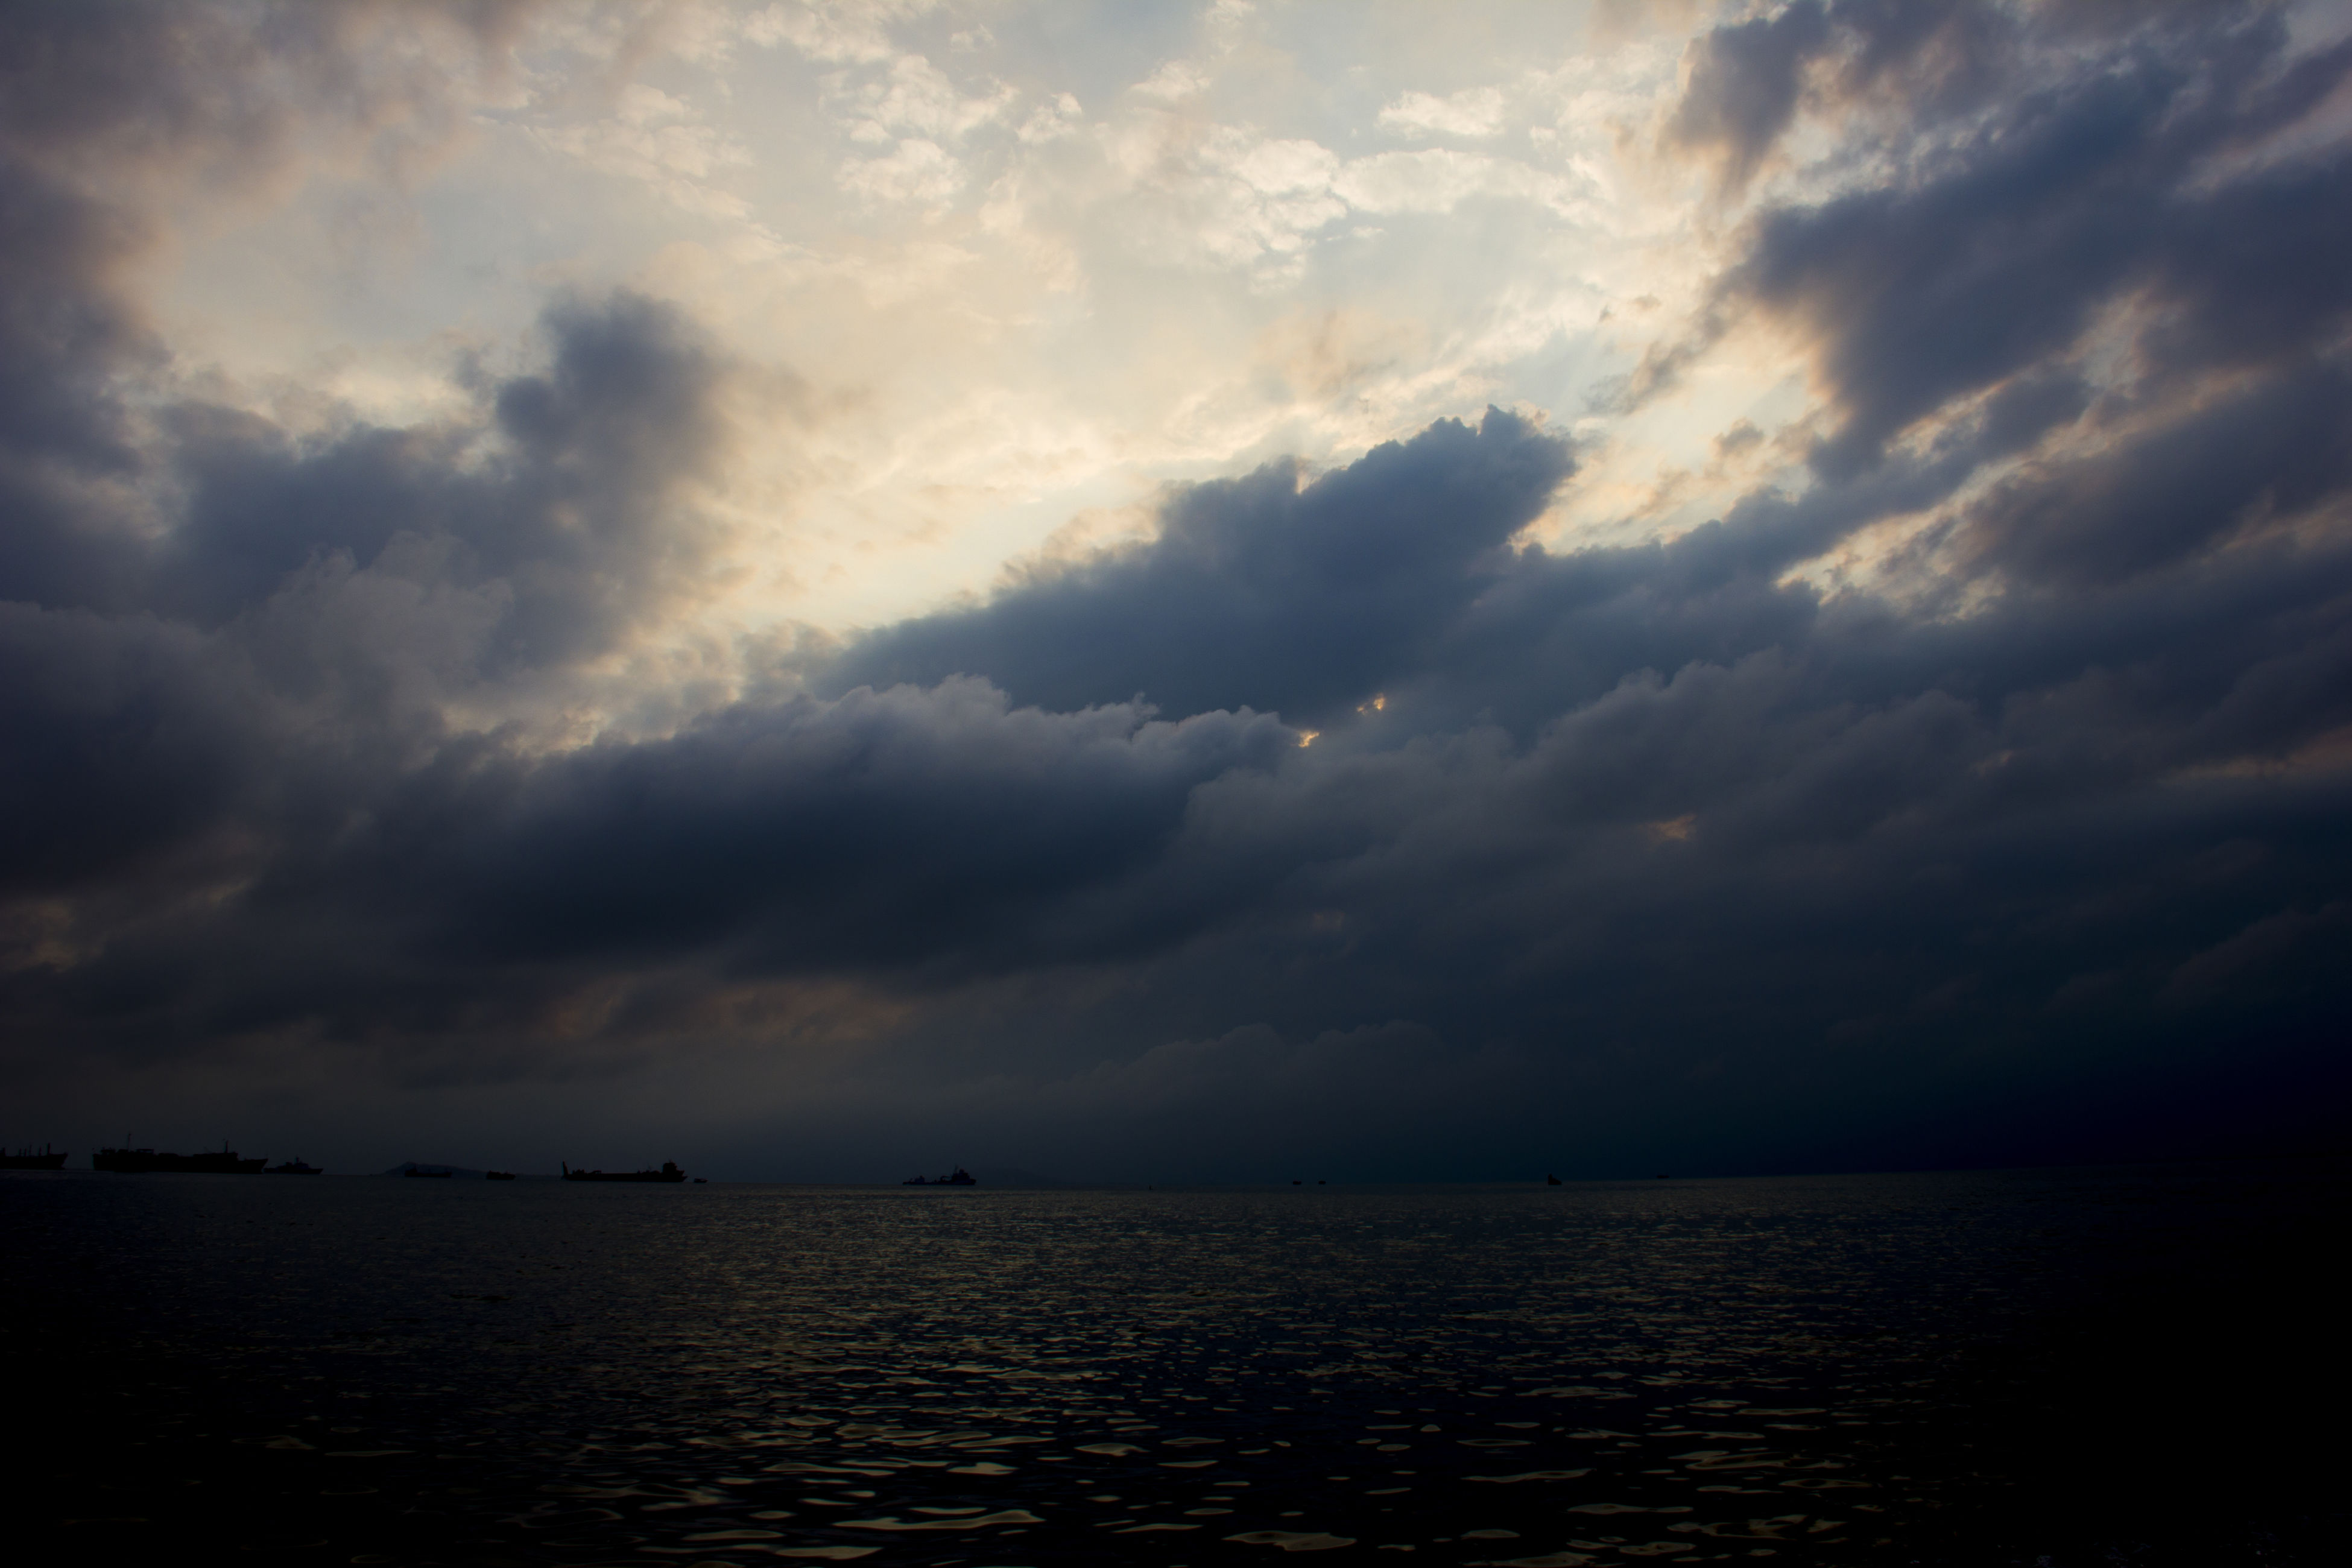 sea, water, beauty in nature, scenics, nature, cloud - sky, sky, no people, sunset, horizon over water, tranquil scene, outdoors, day